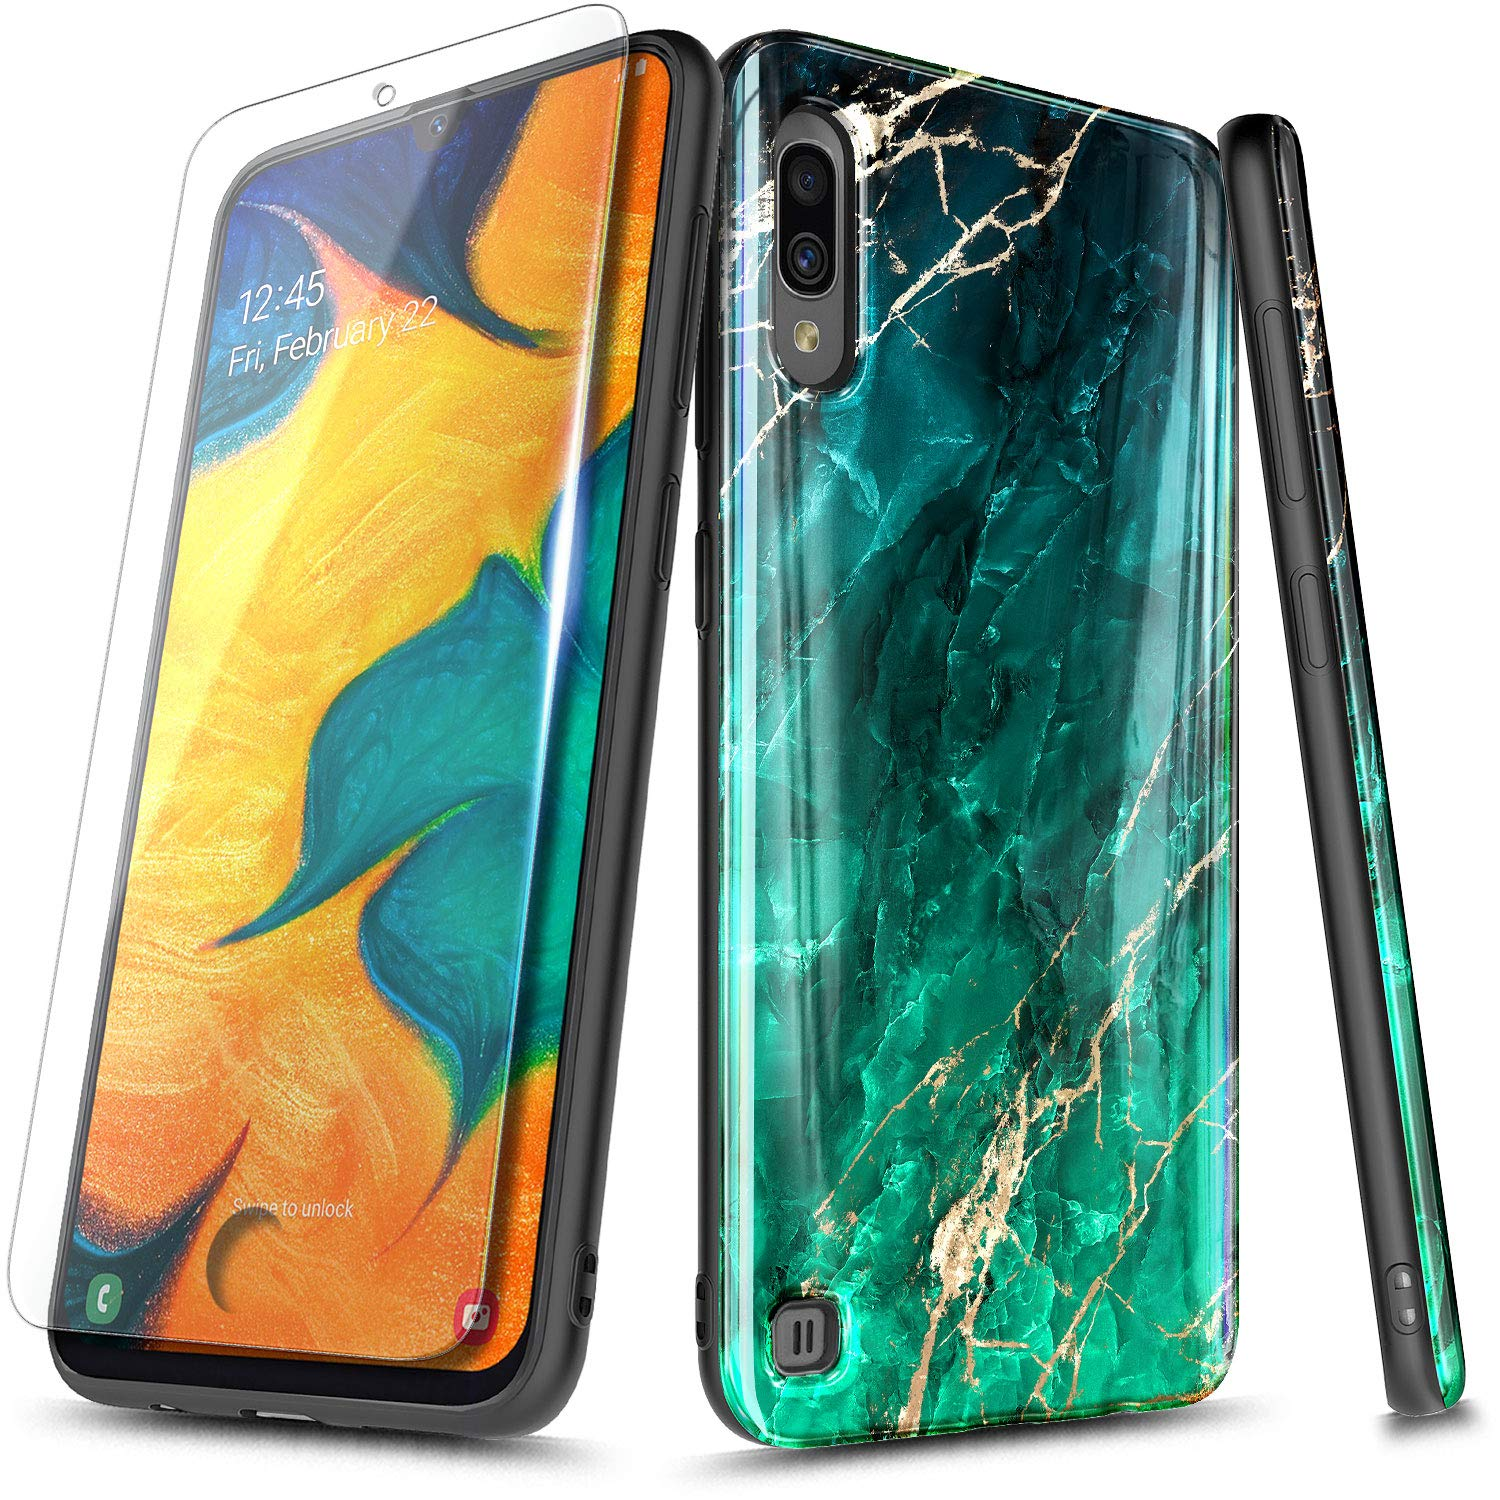 NageBee Case for Samsung Galaxy A10 / Galaxy M10 with Tempered Glass Screen Protector, Ultra Slim Thin Glossy Stylish Protective Cover Phone Case (Not Fit Samsung Galaxy A10E) -Emerald Marble by NageBee